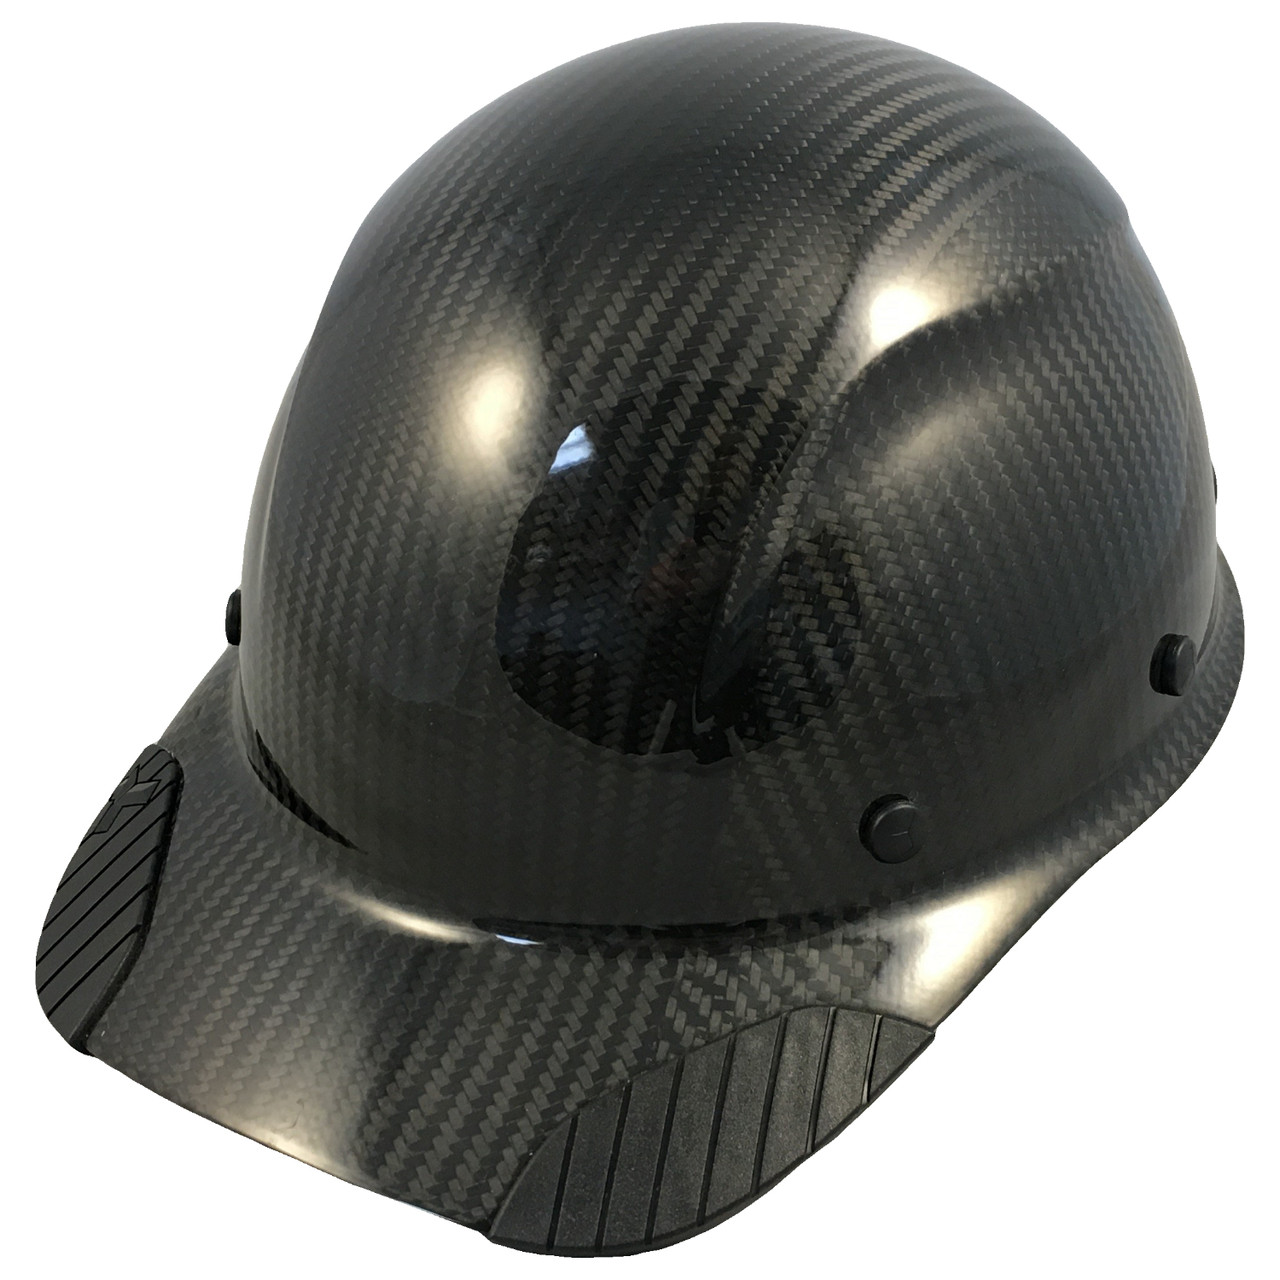 72817519 Actual Carbon Fiber Hard Hat - Cap Style Glossy Black - Oblique View.  Loading zoom